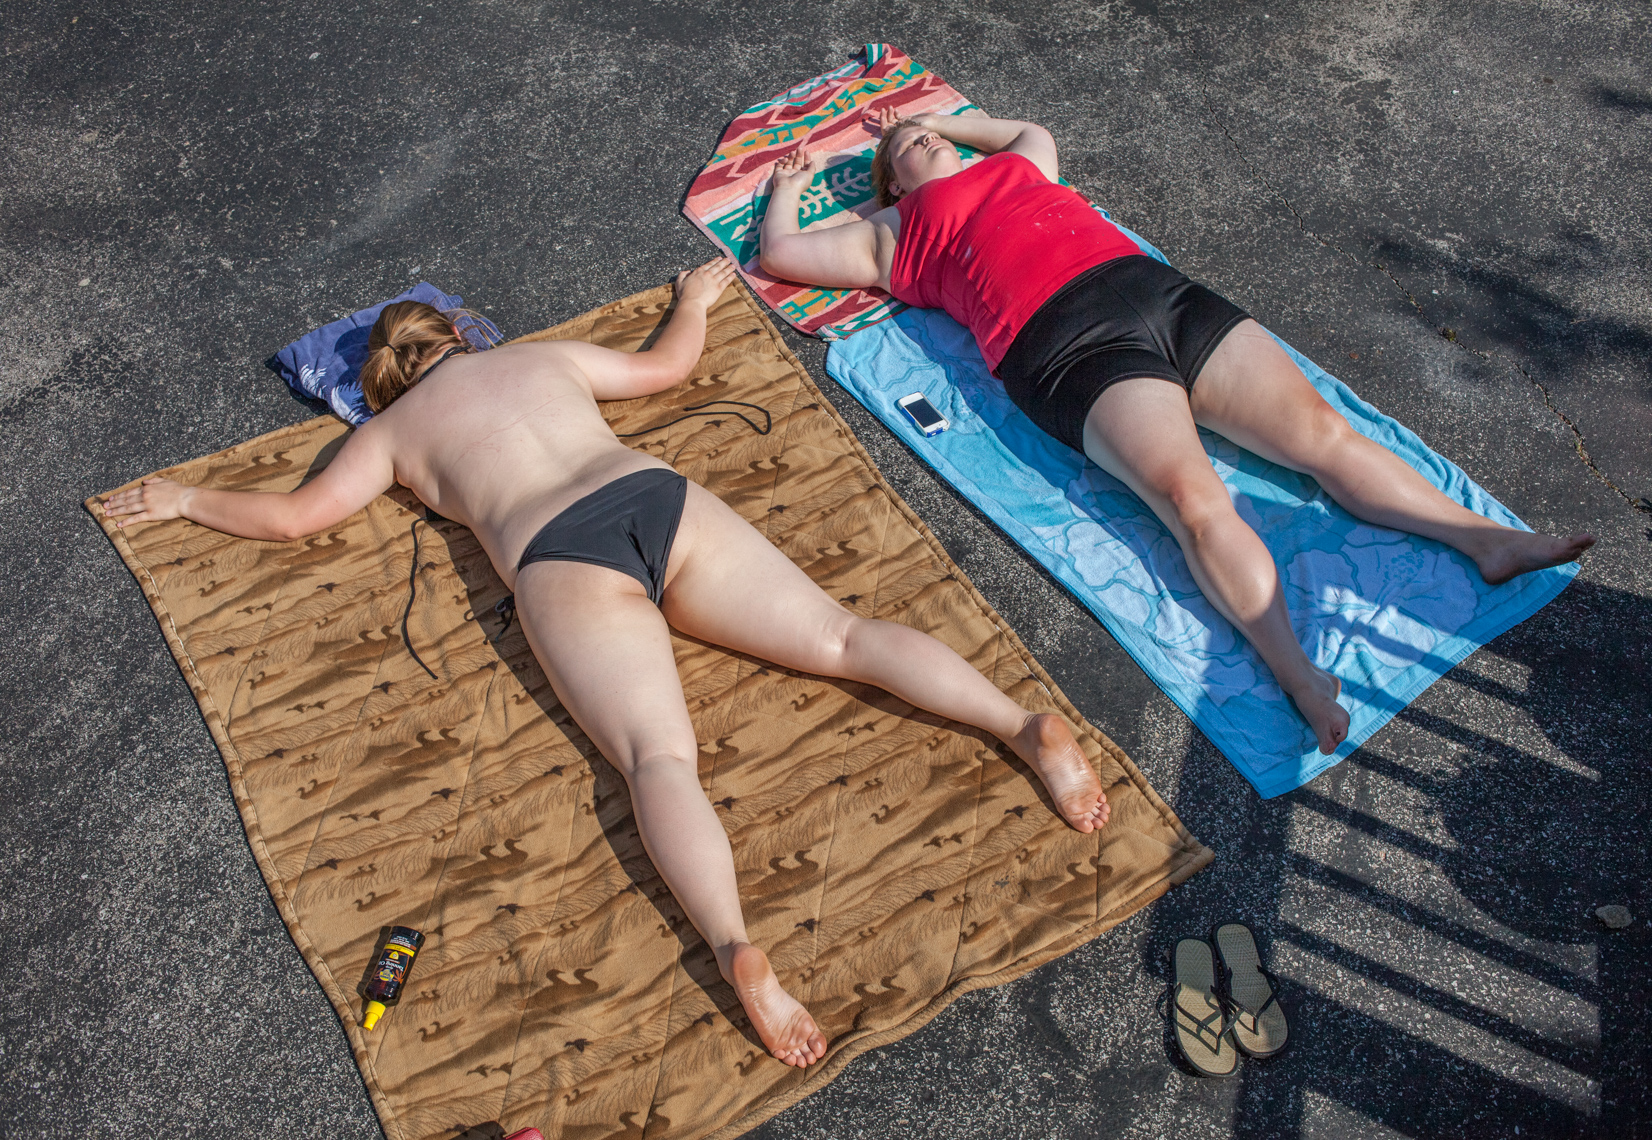 Lexington, Kentucky, sunbathers, pavement, americana, documentary, real, life, women, buxom, beauty, quirky, humor, fine art, women, owned, business, women in photography